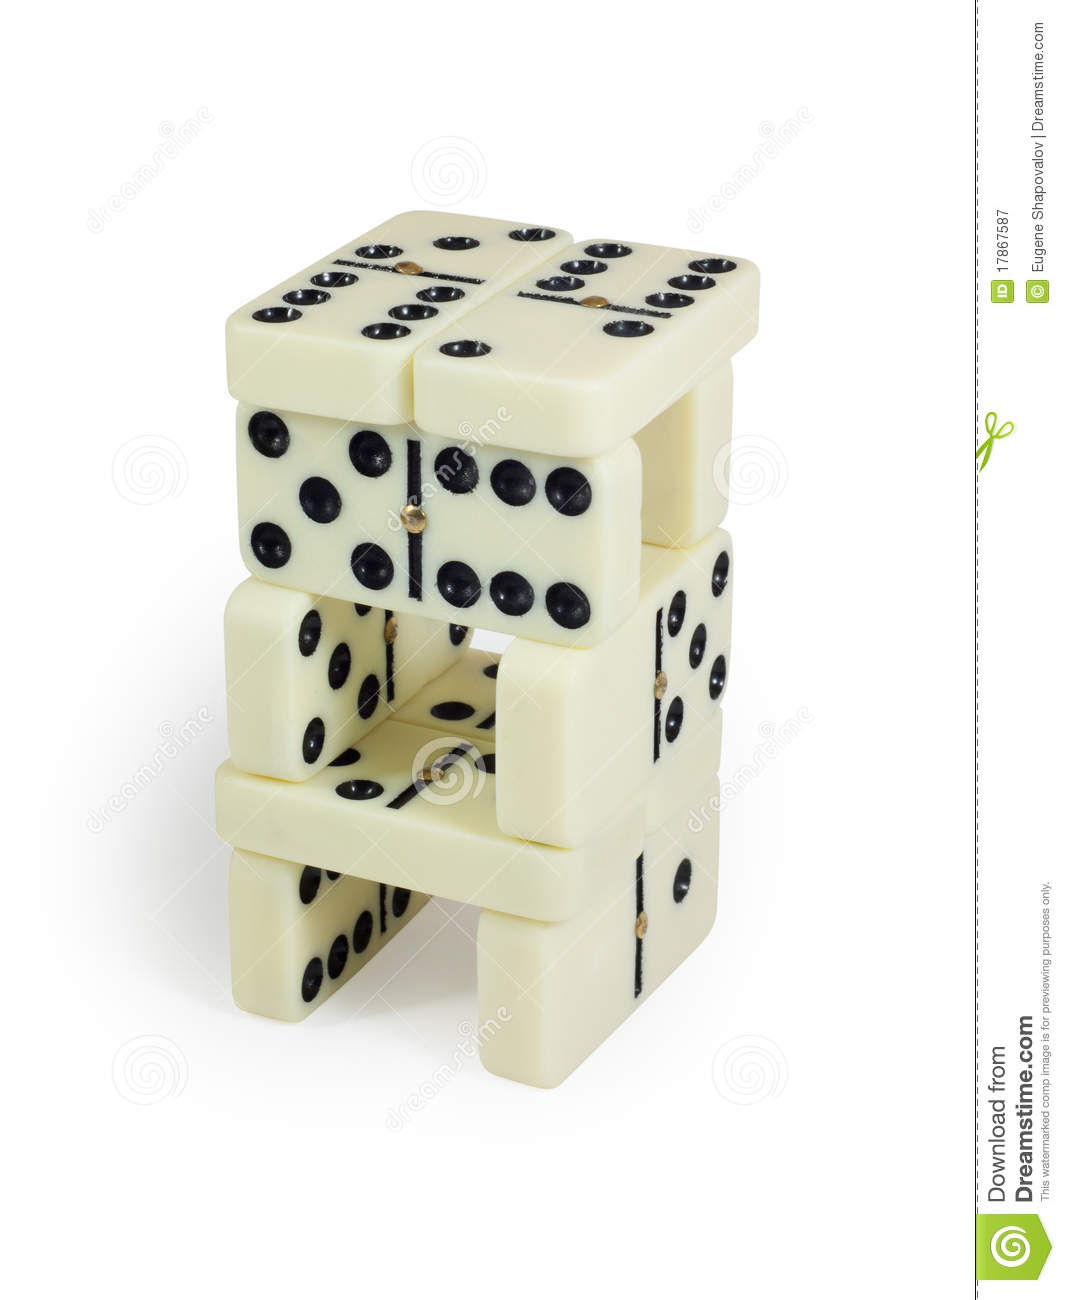 Domino tower. Isolated on white background with clipping path.